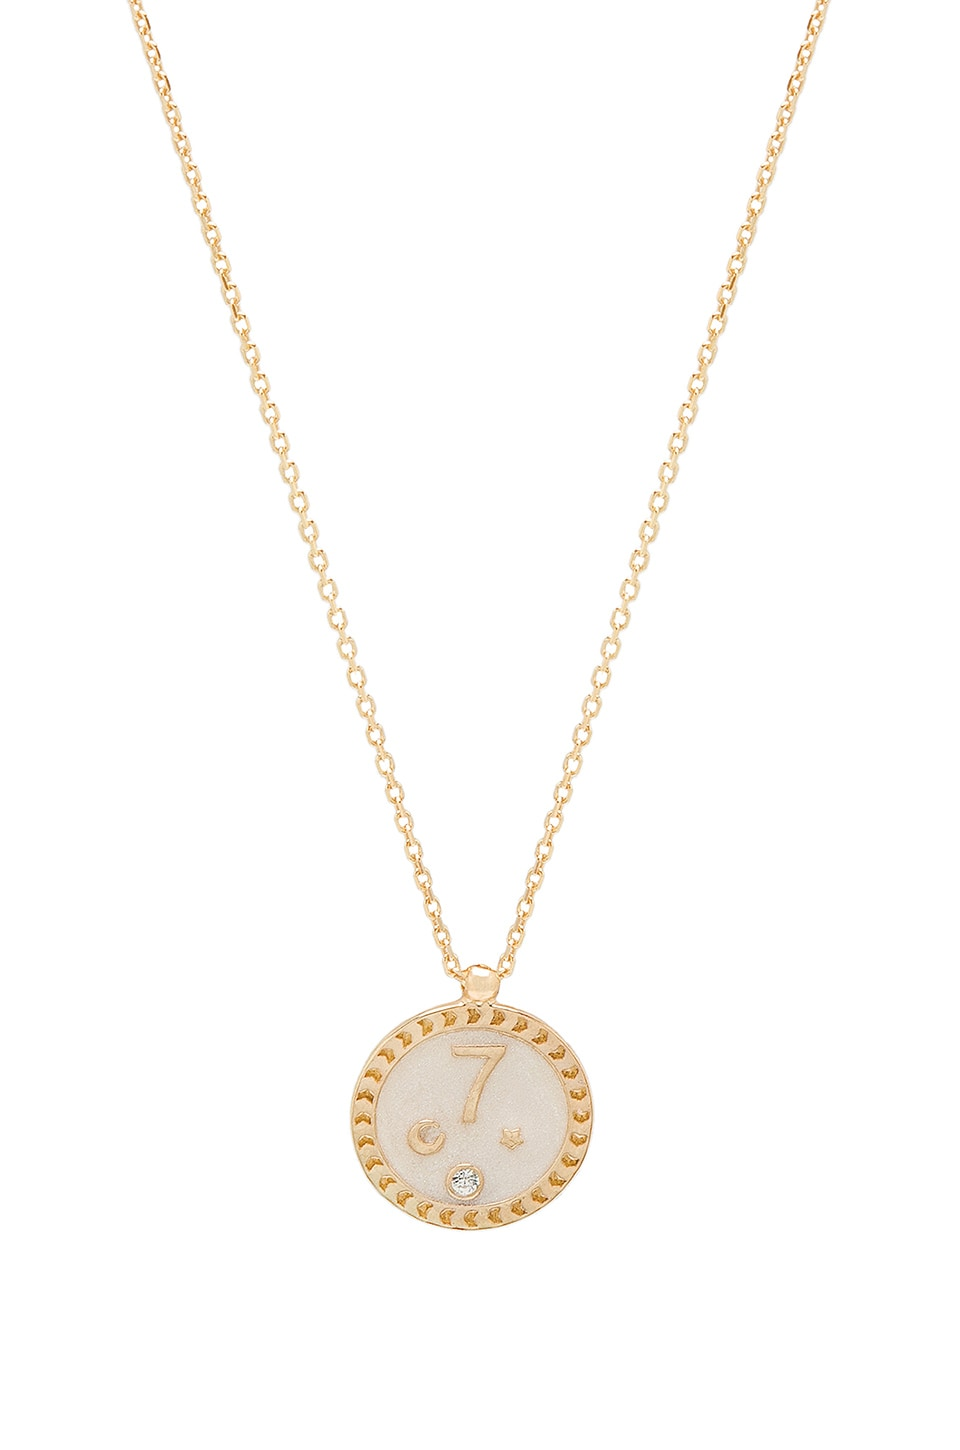 NATALIE B JEWELRY Count Your Lucky Stars Necklace in Metallic Gold